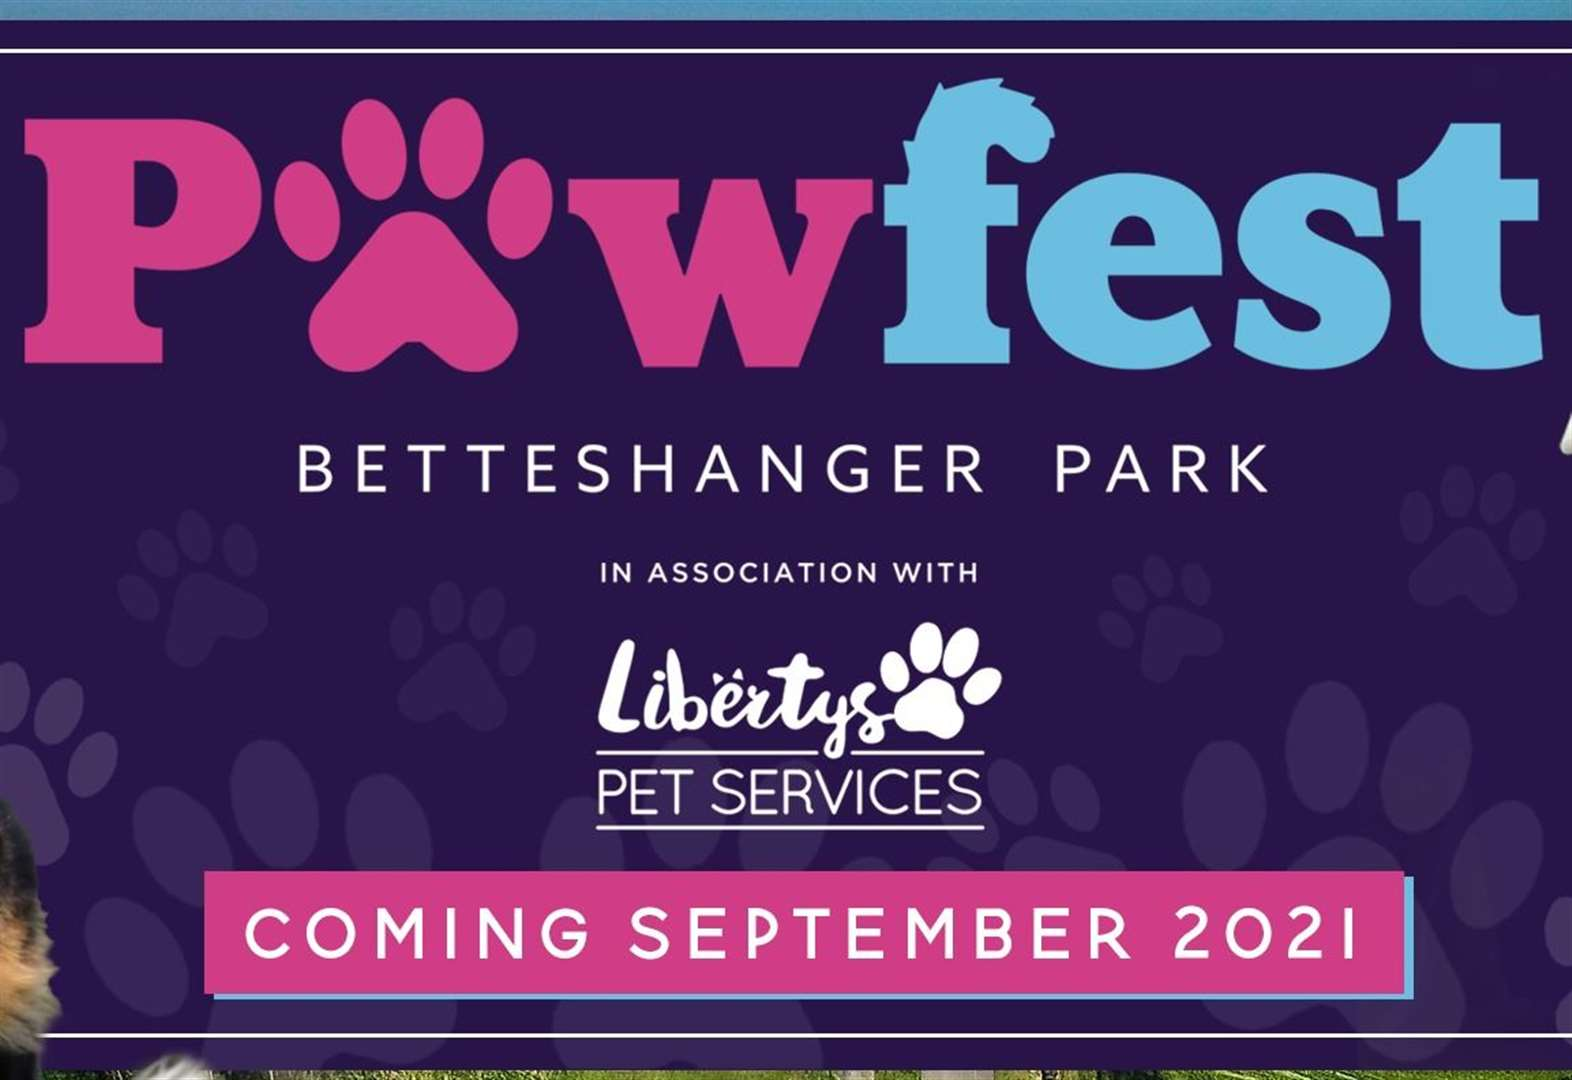 PawFest is coming to Kent